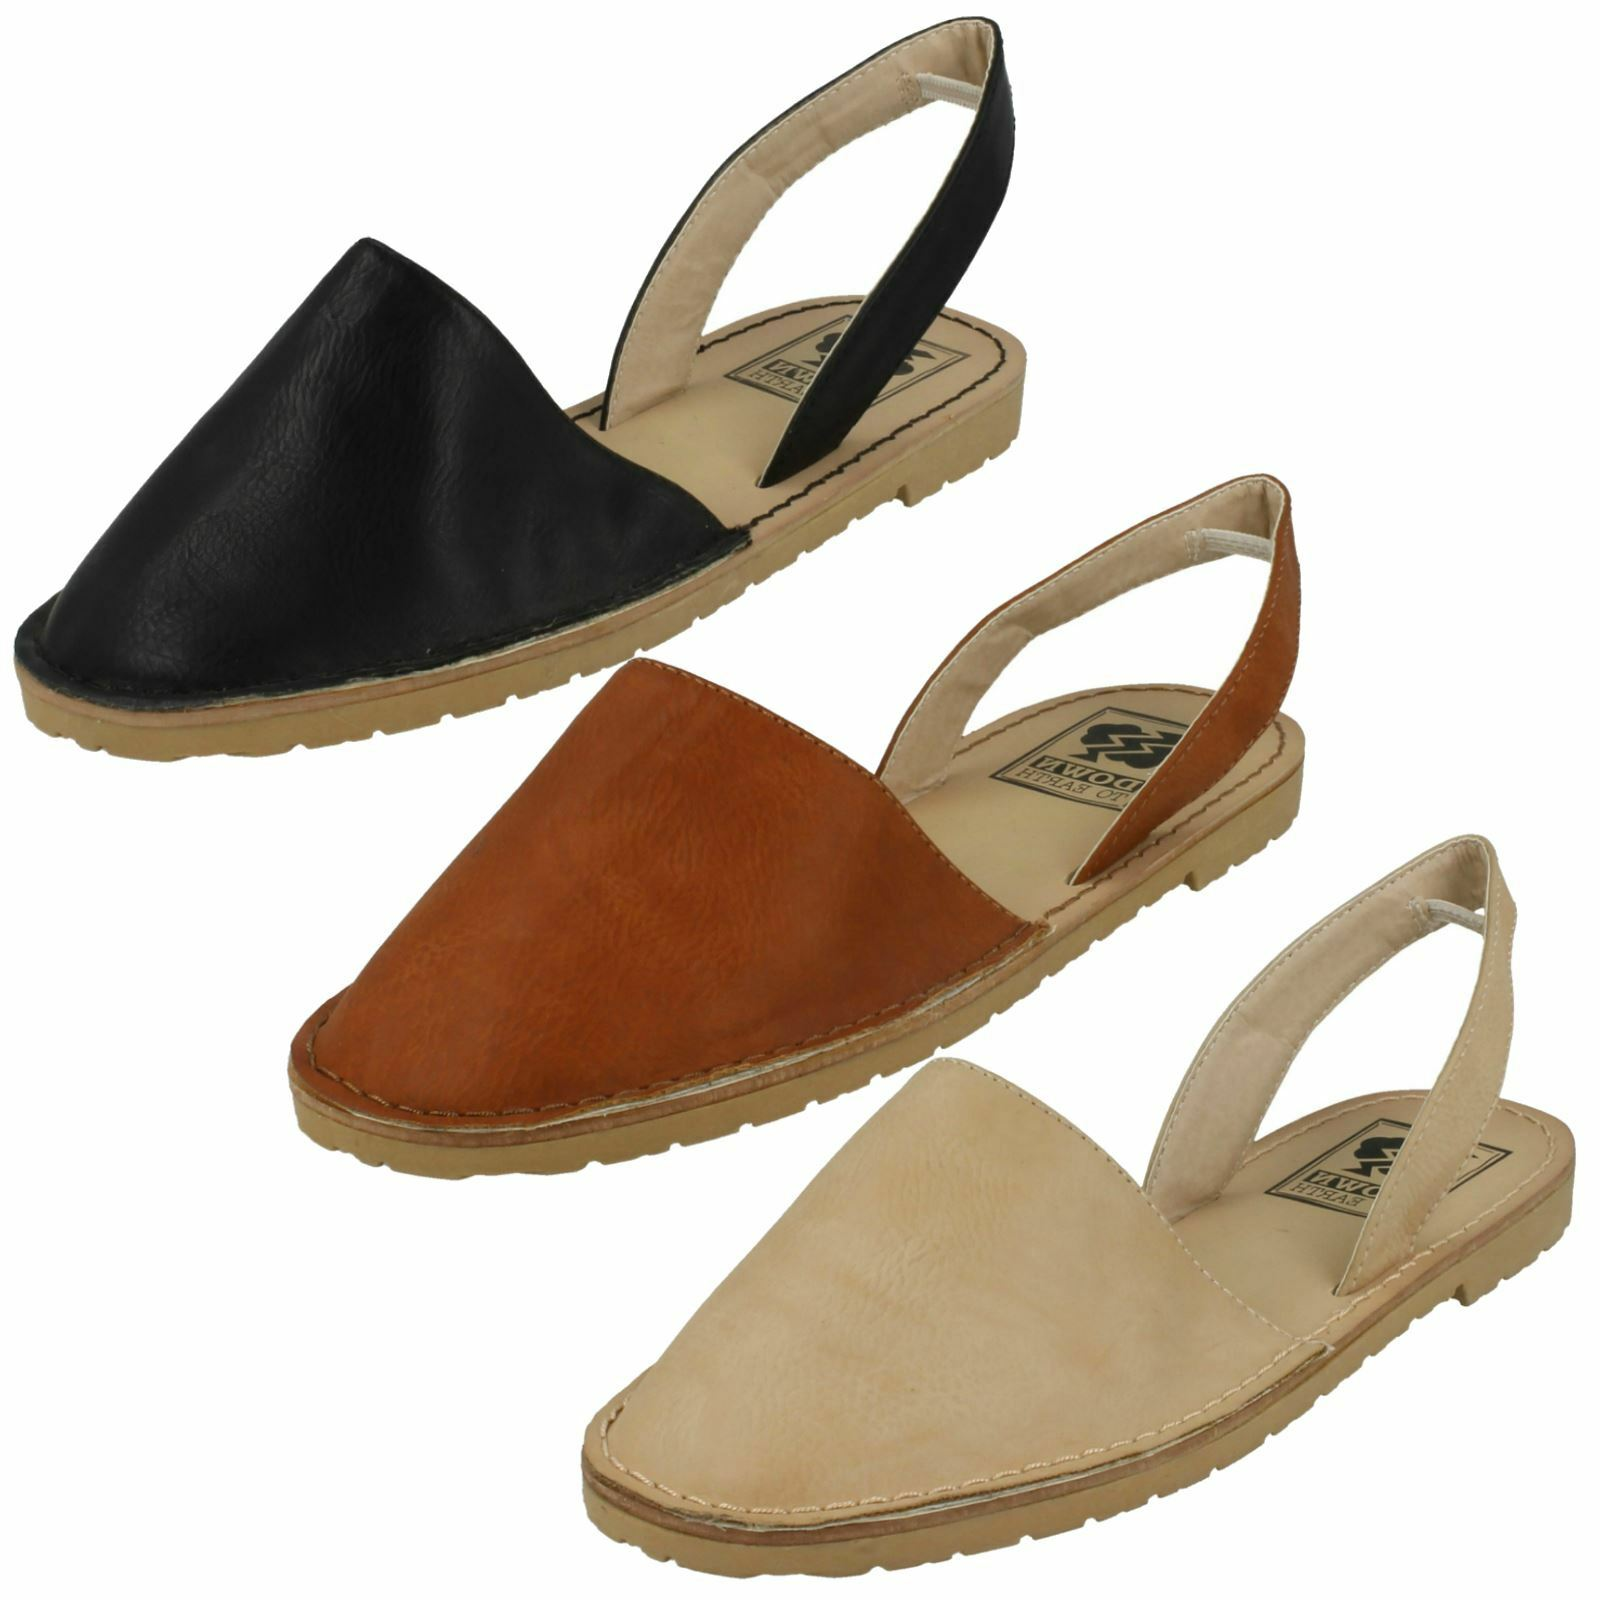 Down To Slingback Earth Ladies Closed Toe Slingback To Mule a34706